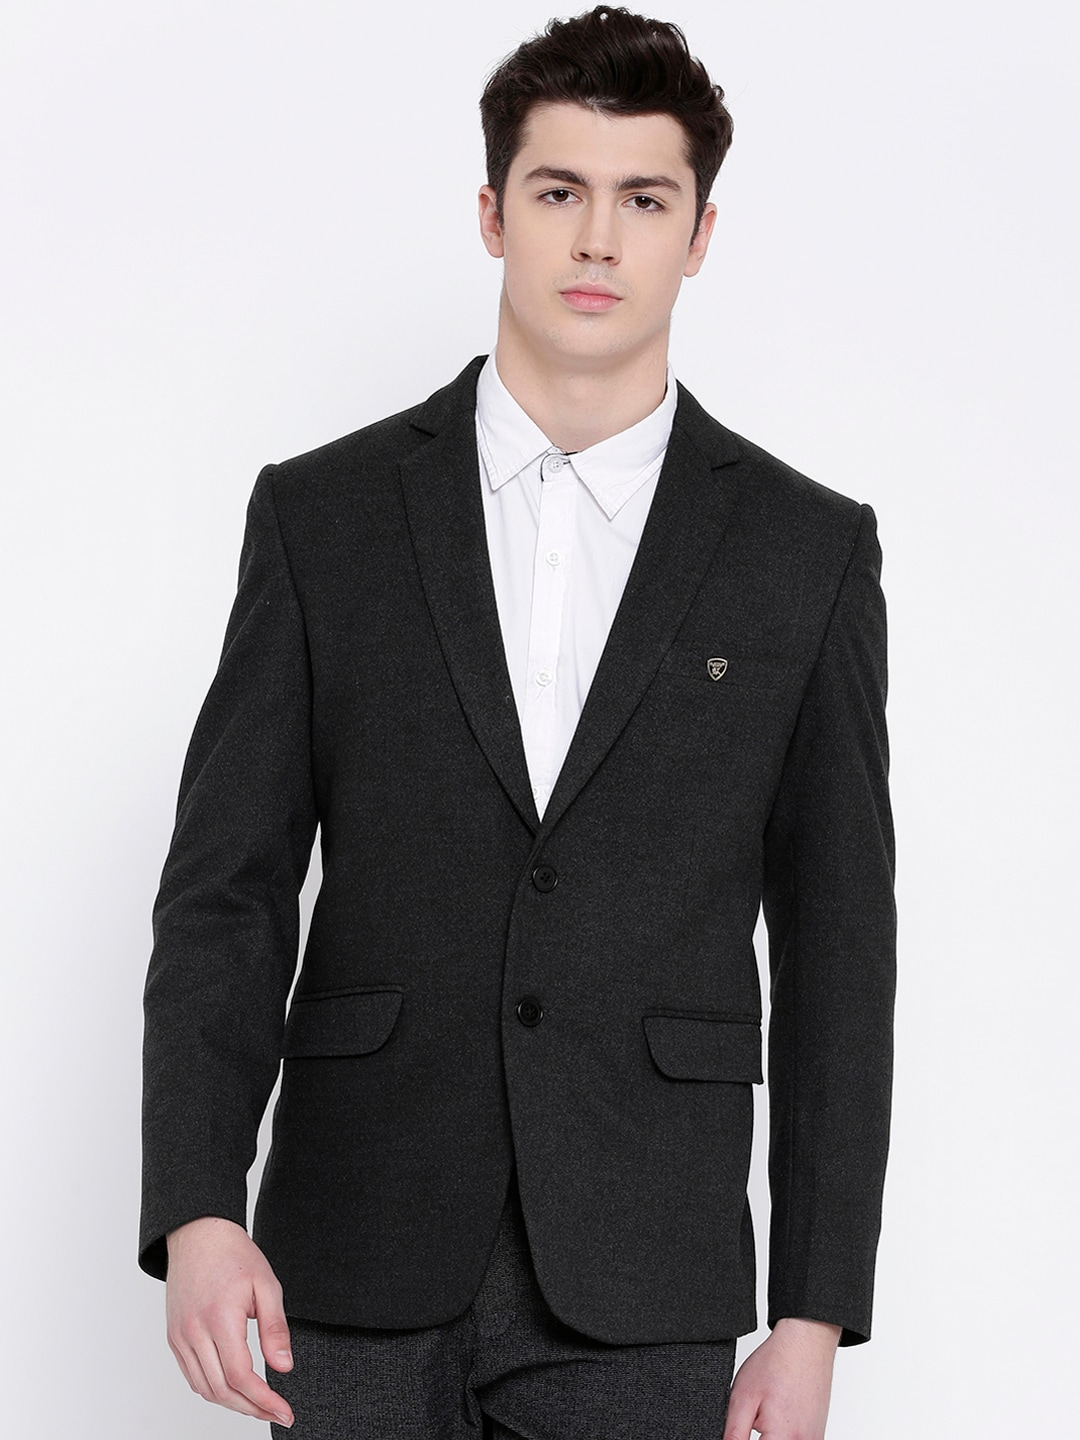 PLATINUM Studio Charcoal Grey Solid Single-Breasted Casual Blazer image